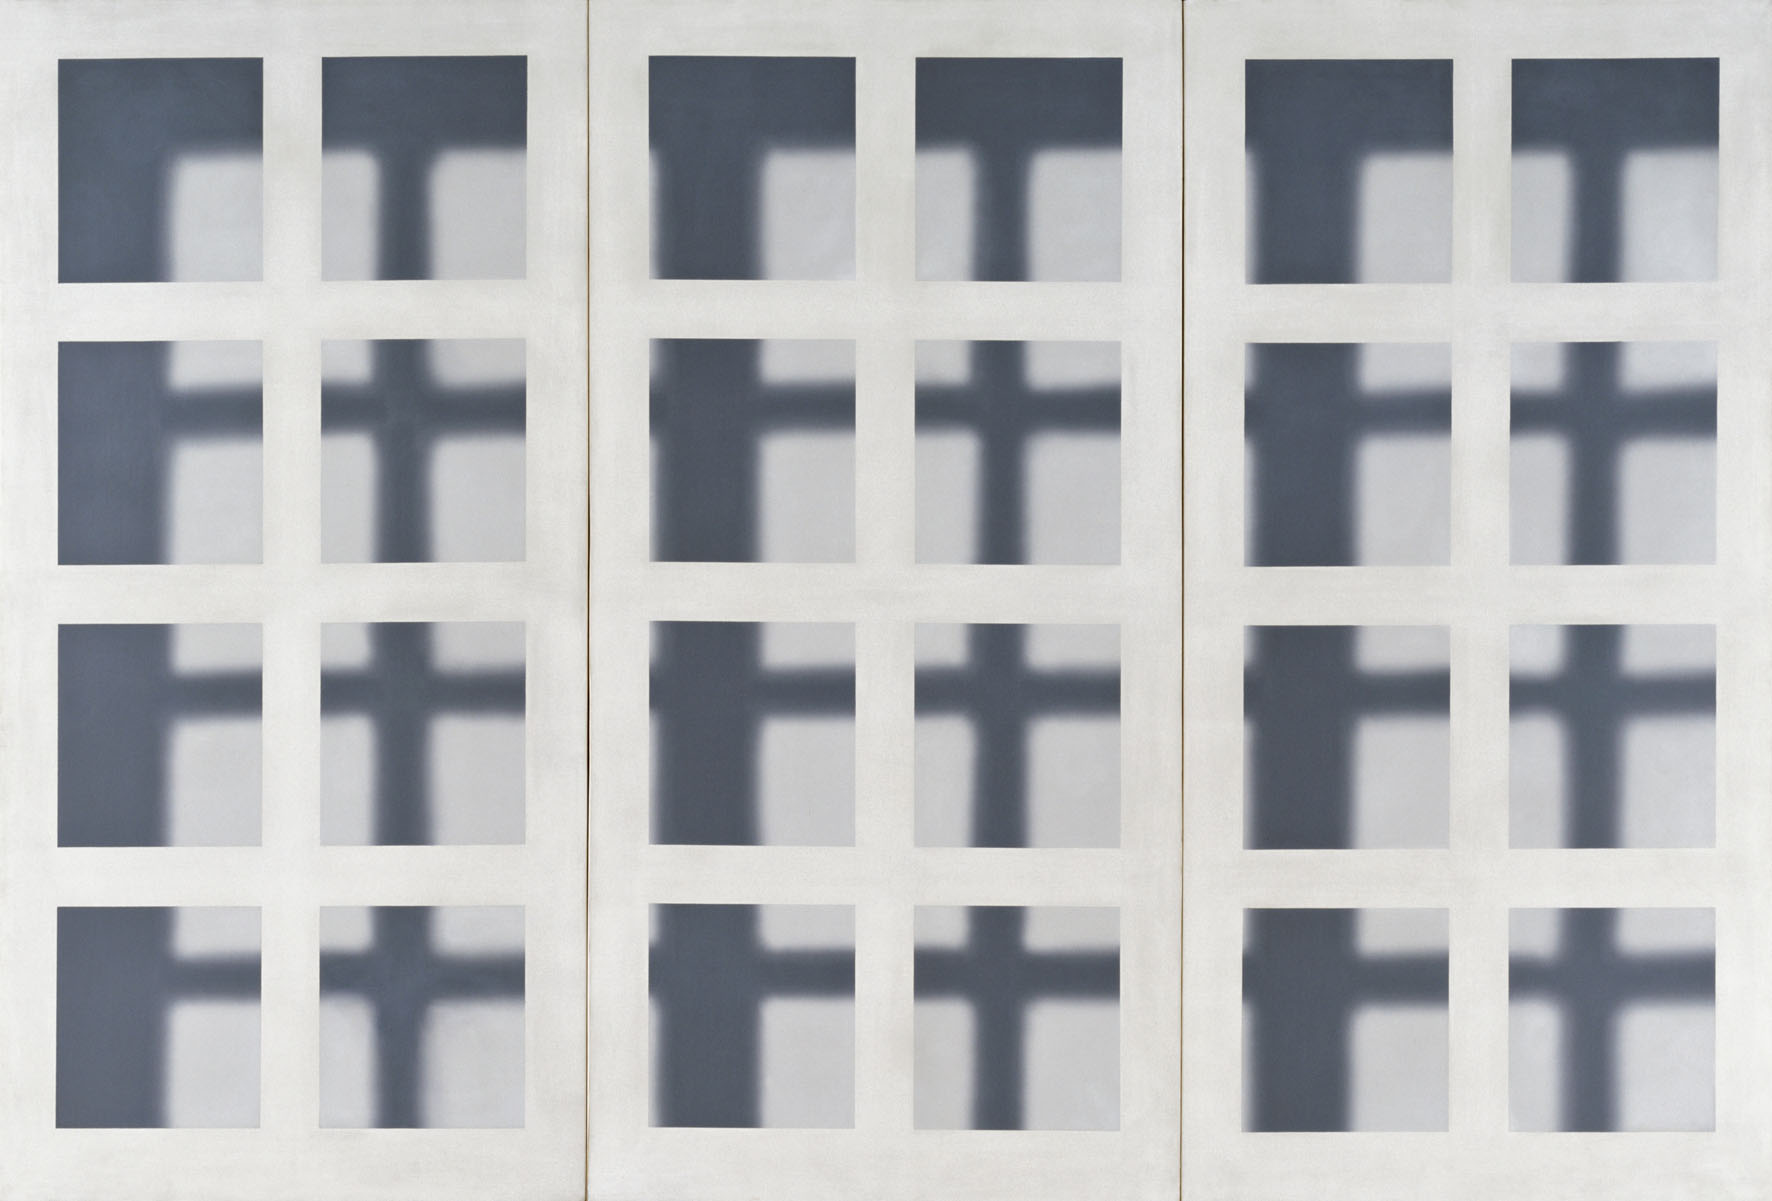 Gerhard Richter - Fenstergitter - 1968 - Ludwig Museum-Museum of Contemporary Art, Budapest